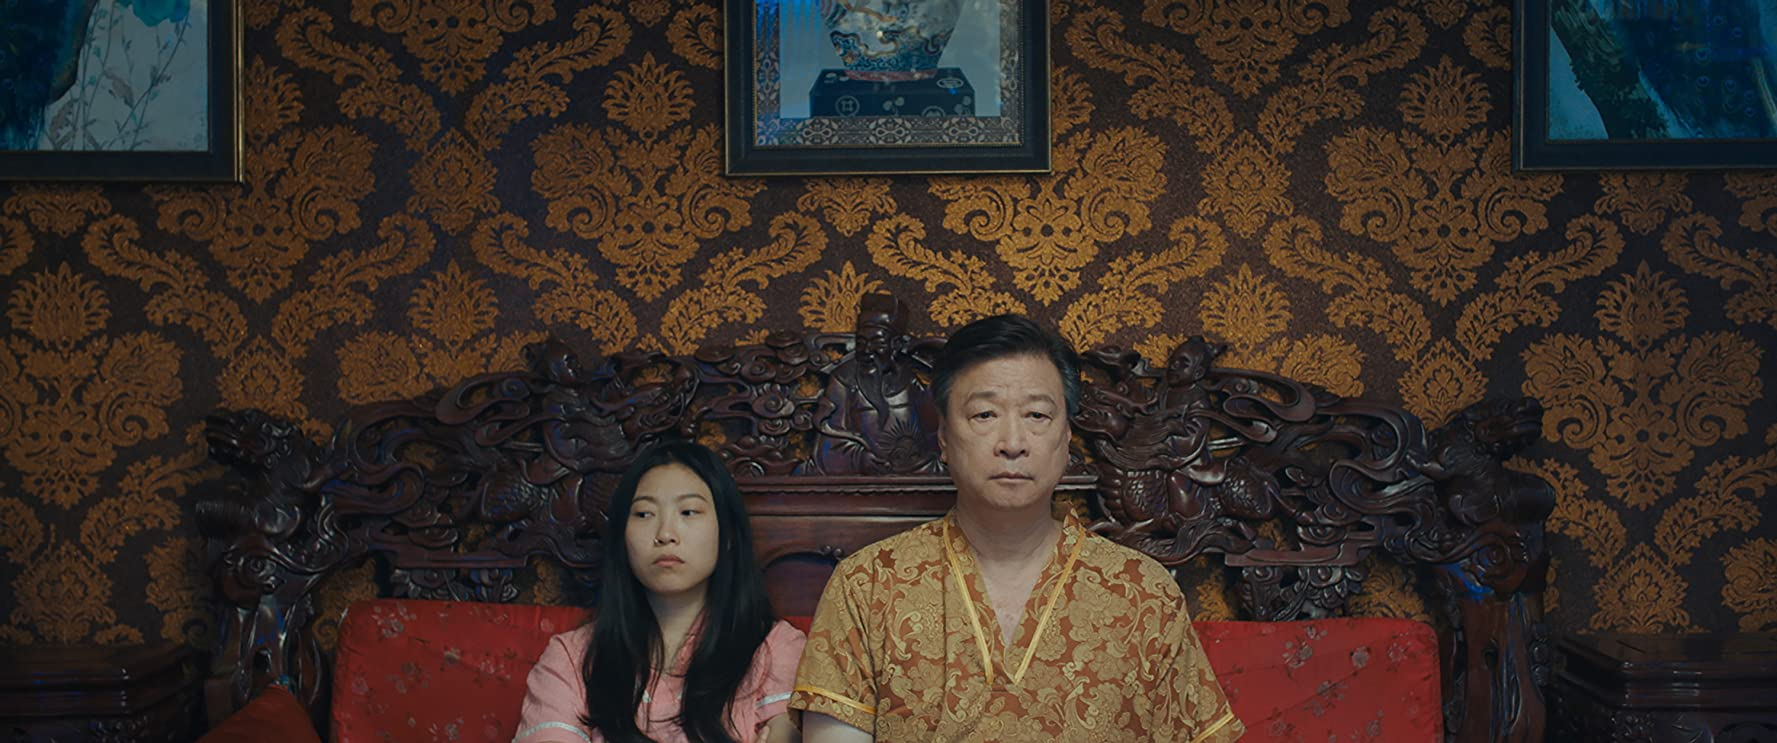 Tzi Ma and Awkwafina in The Farewell (2019)